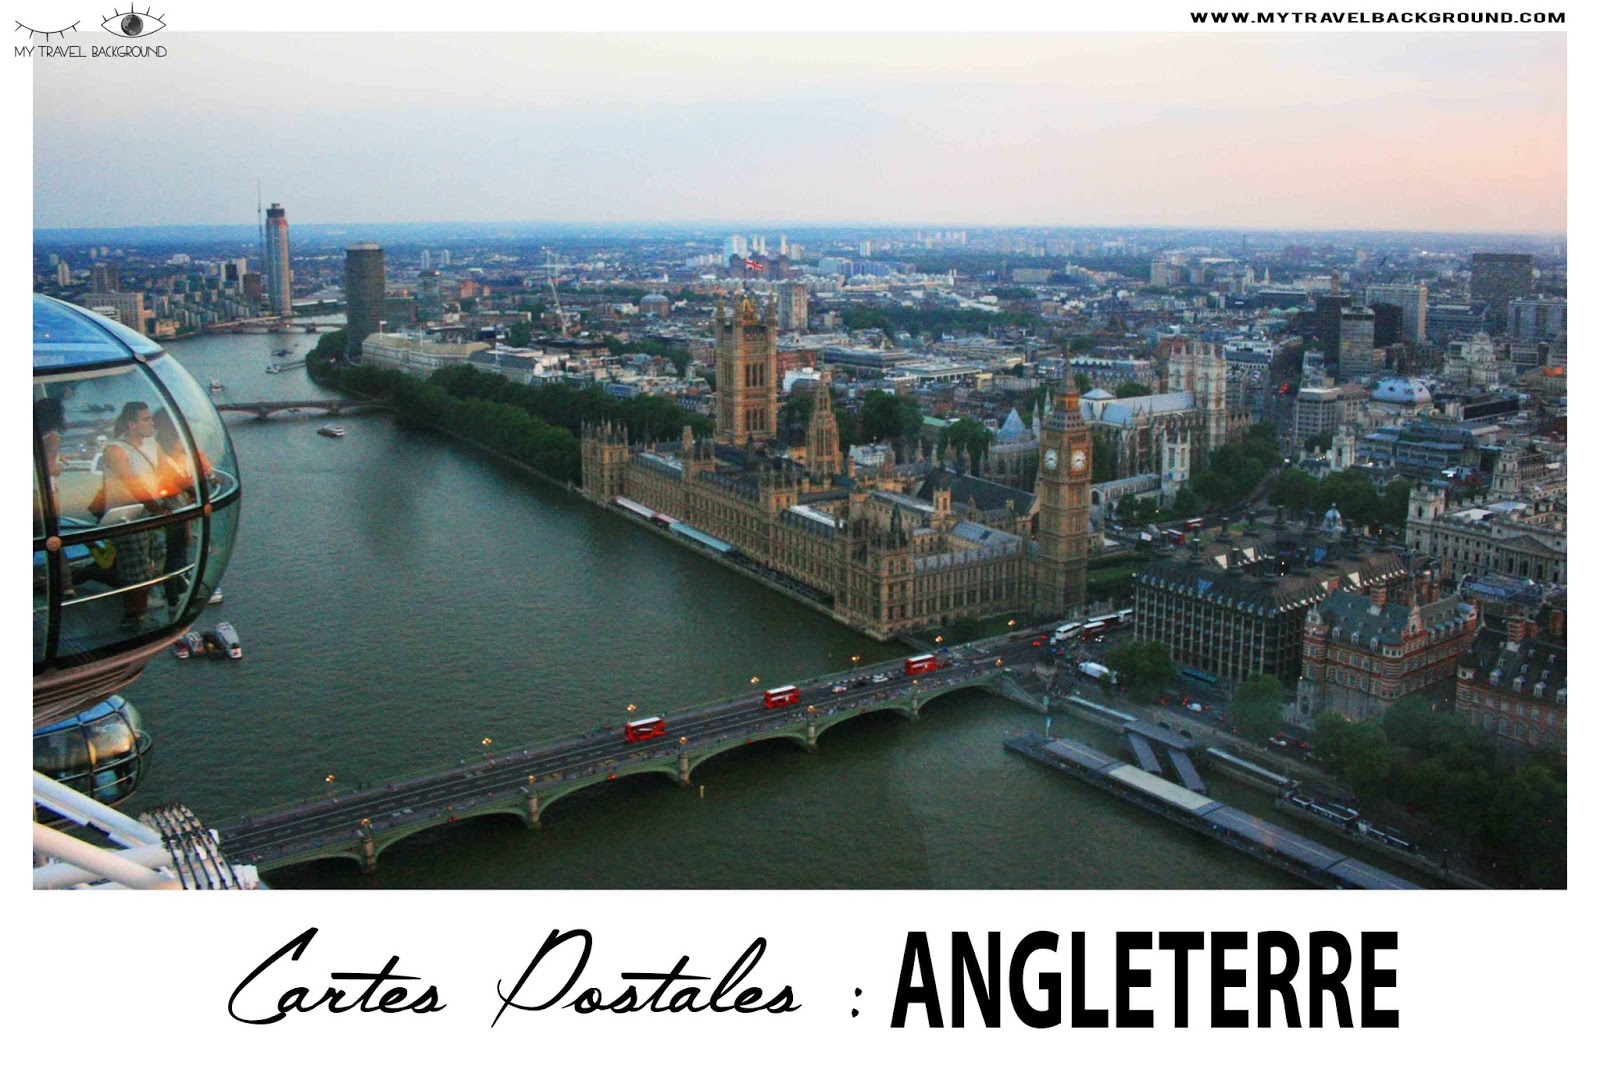 My Travel Background : Cartes Postale Angleterre